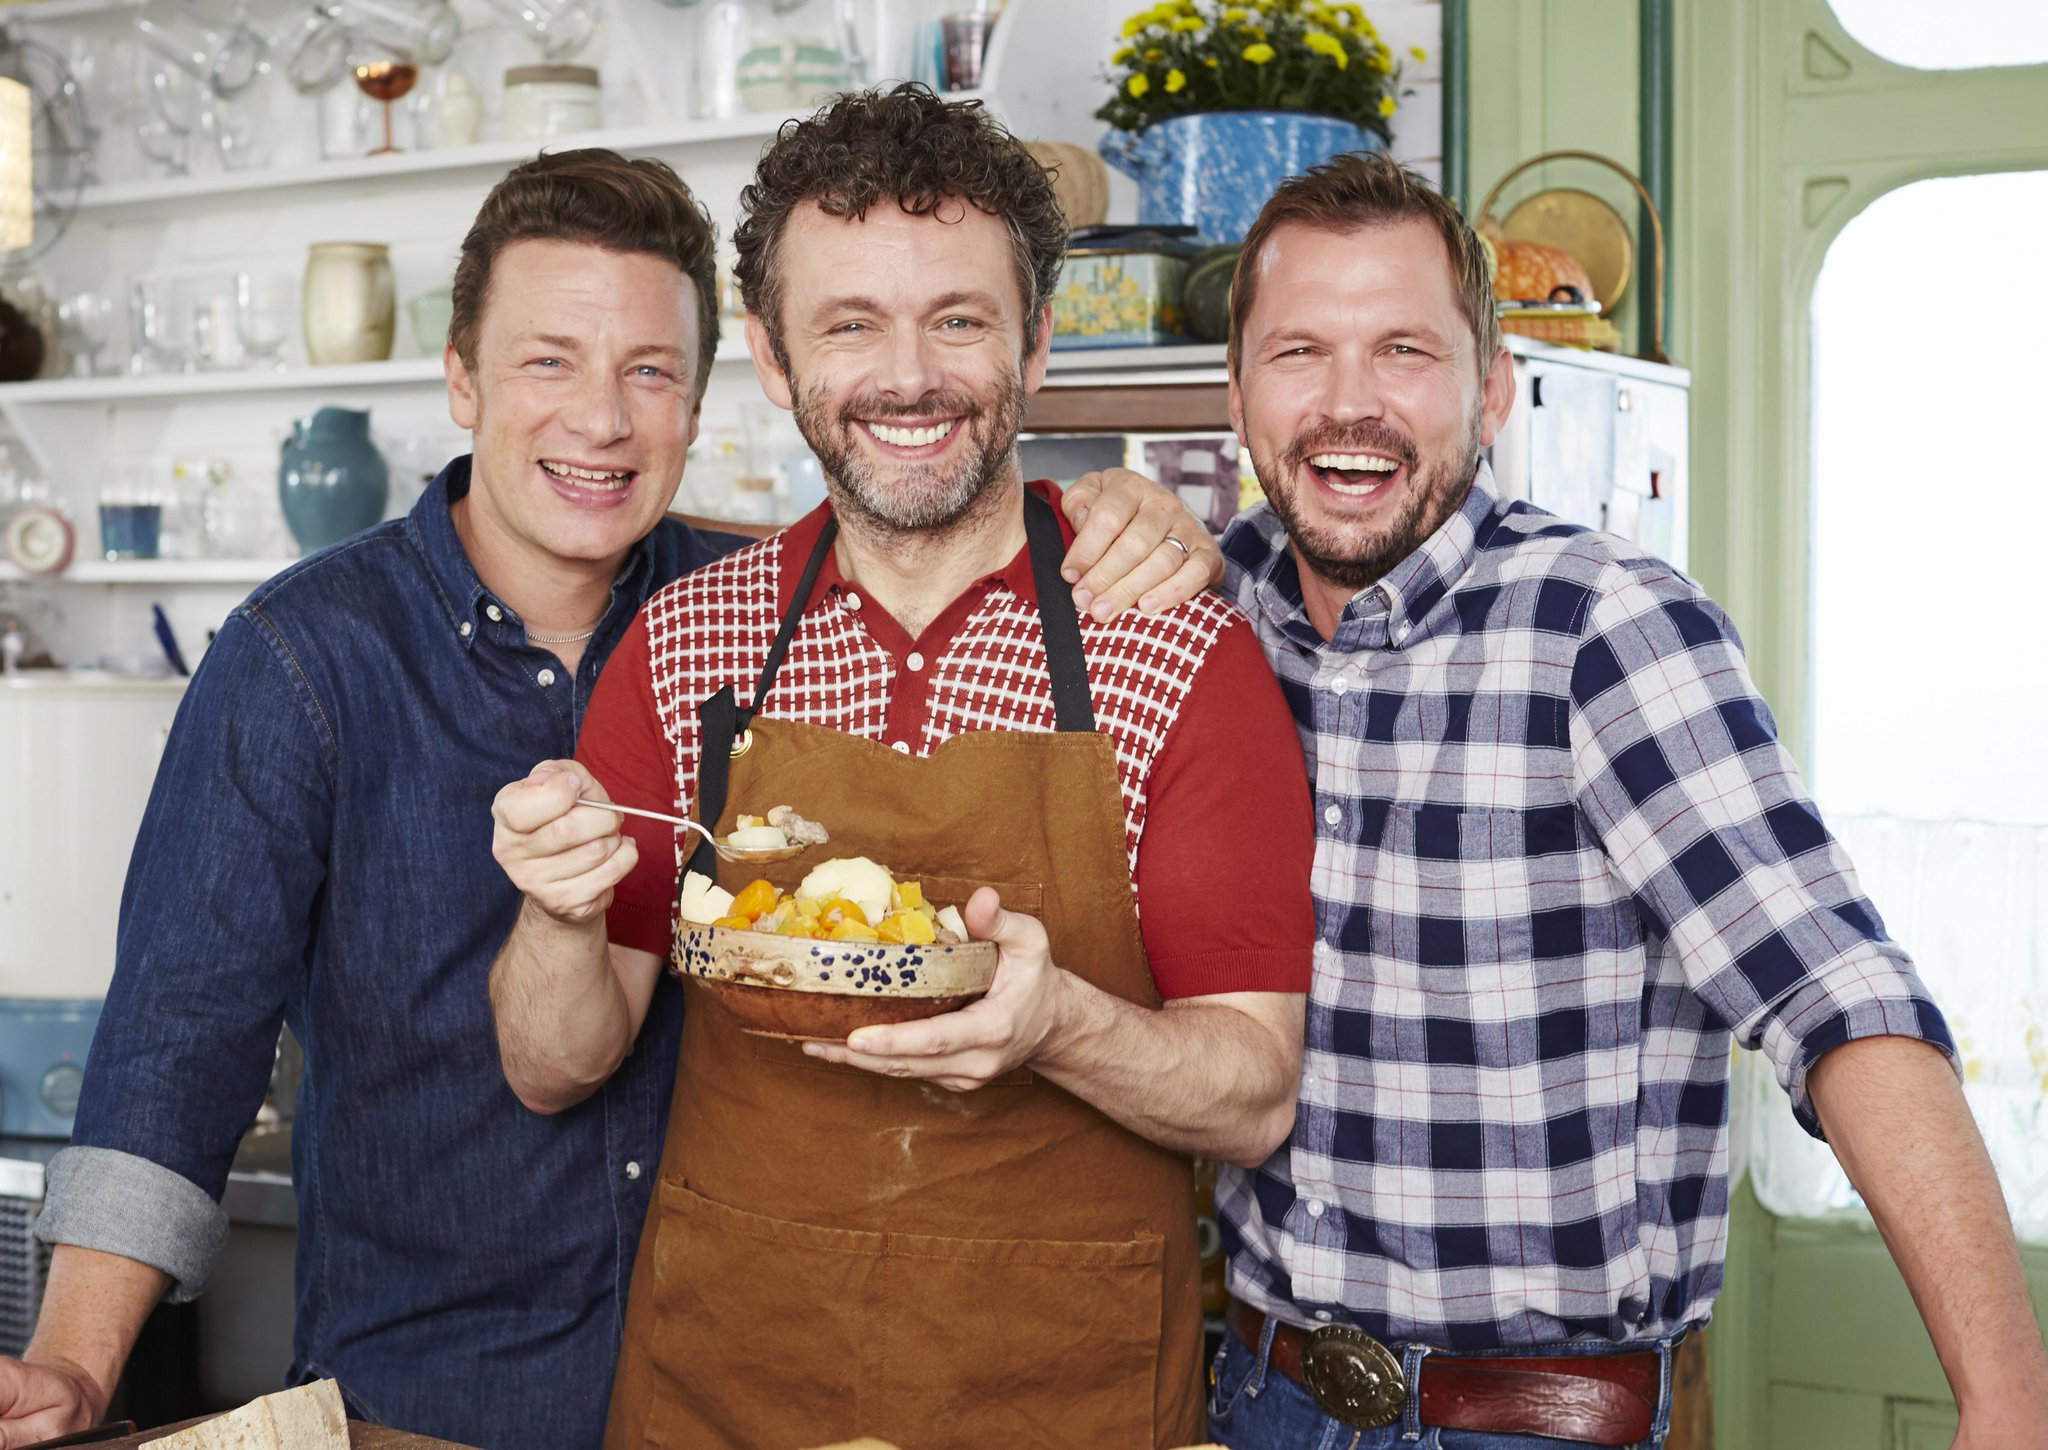 Top lad @michaelsheen joins me and @jimmysfarm on tonights #FridayNightFeast @Channel4 8pm! http://t.co/HNZ57zUkTq http://t.co/Xc5oRLS5q0